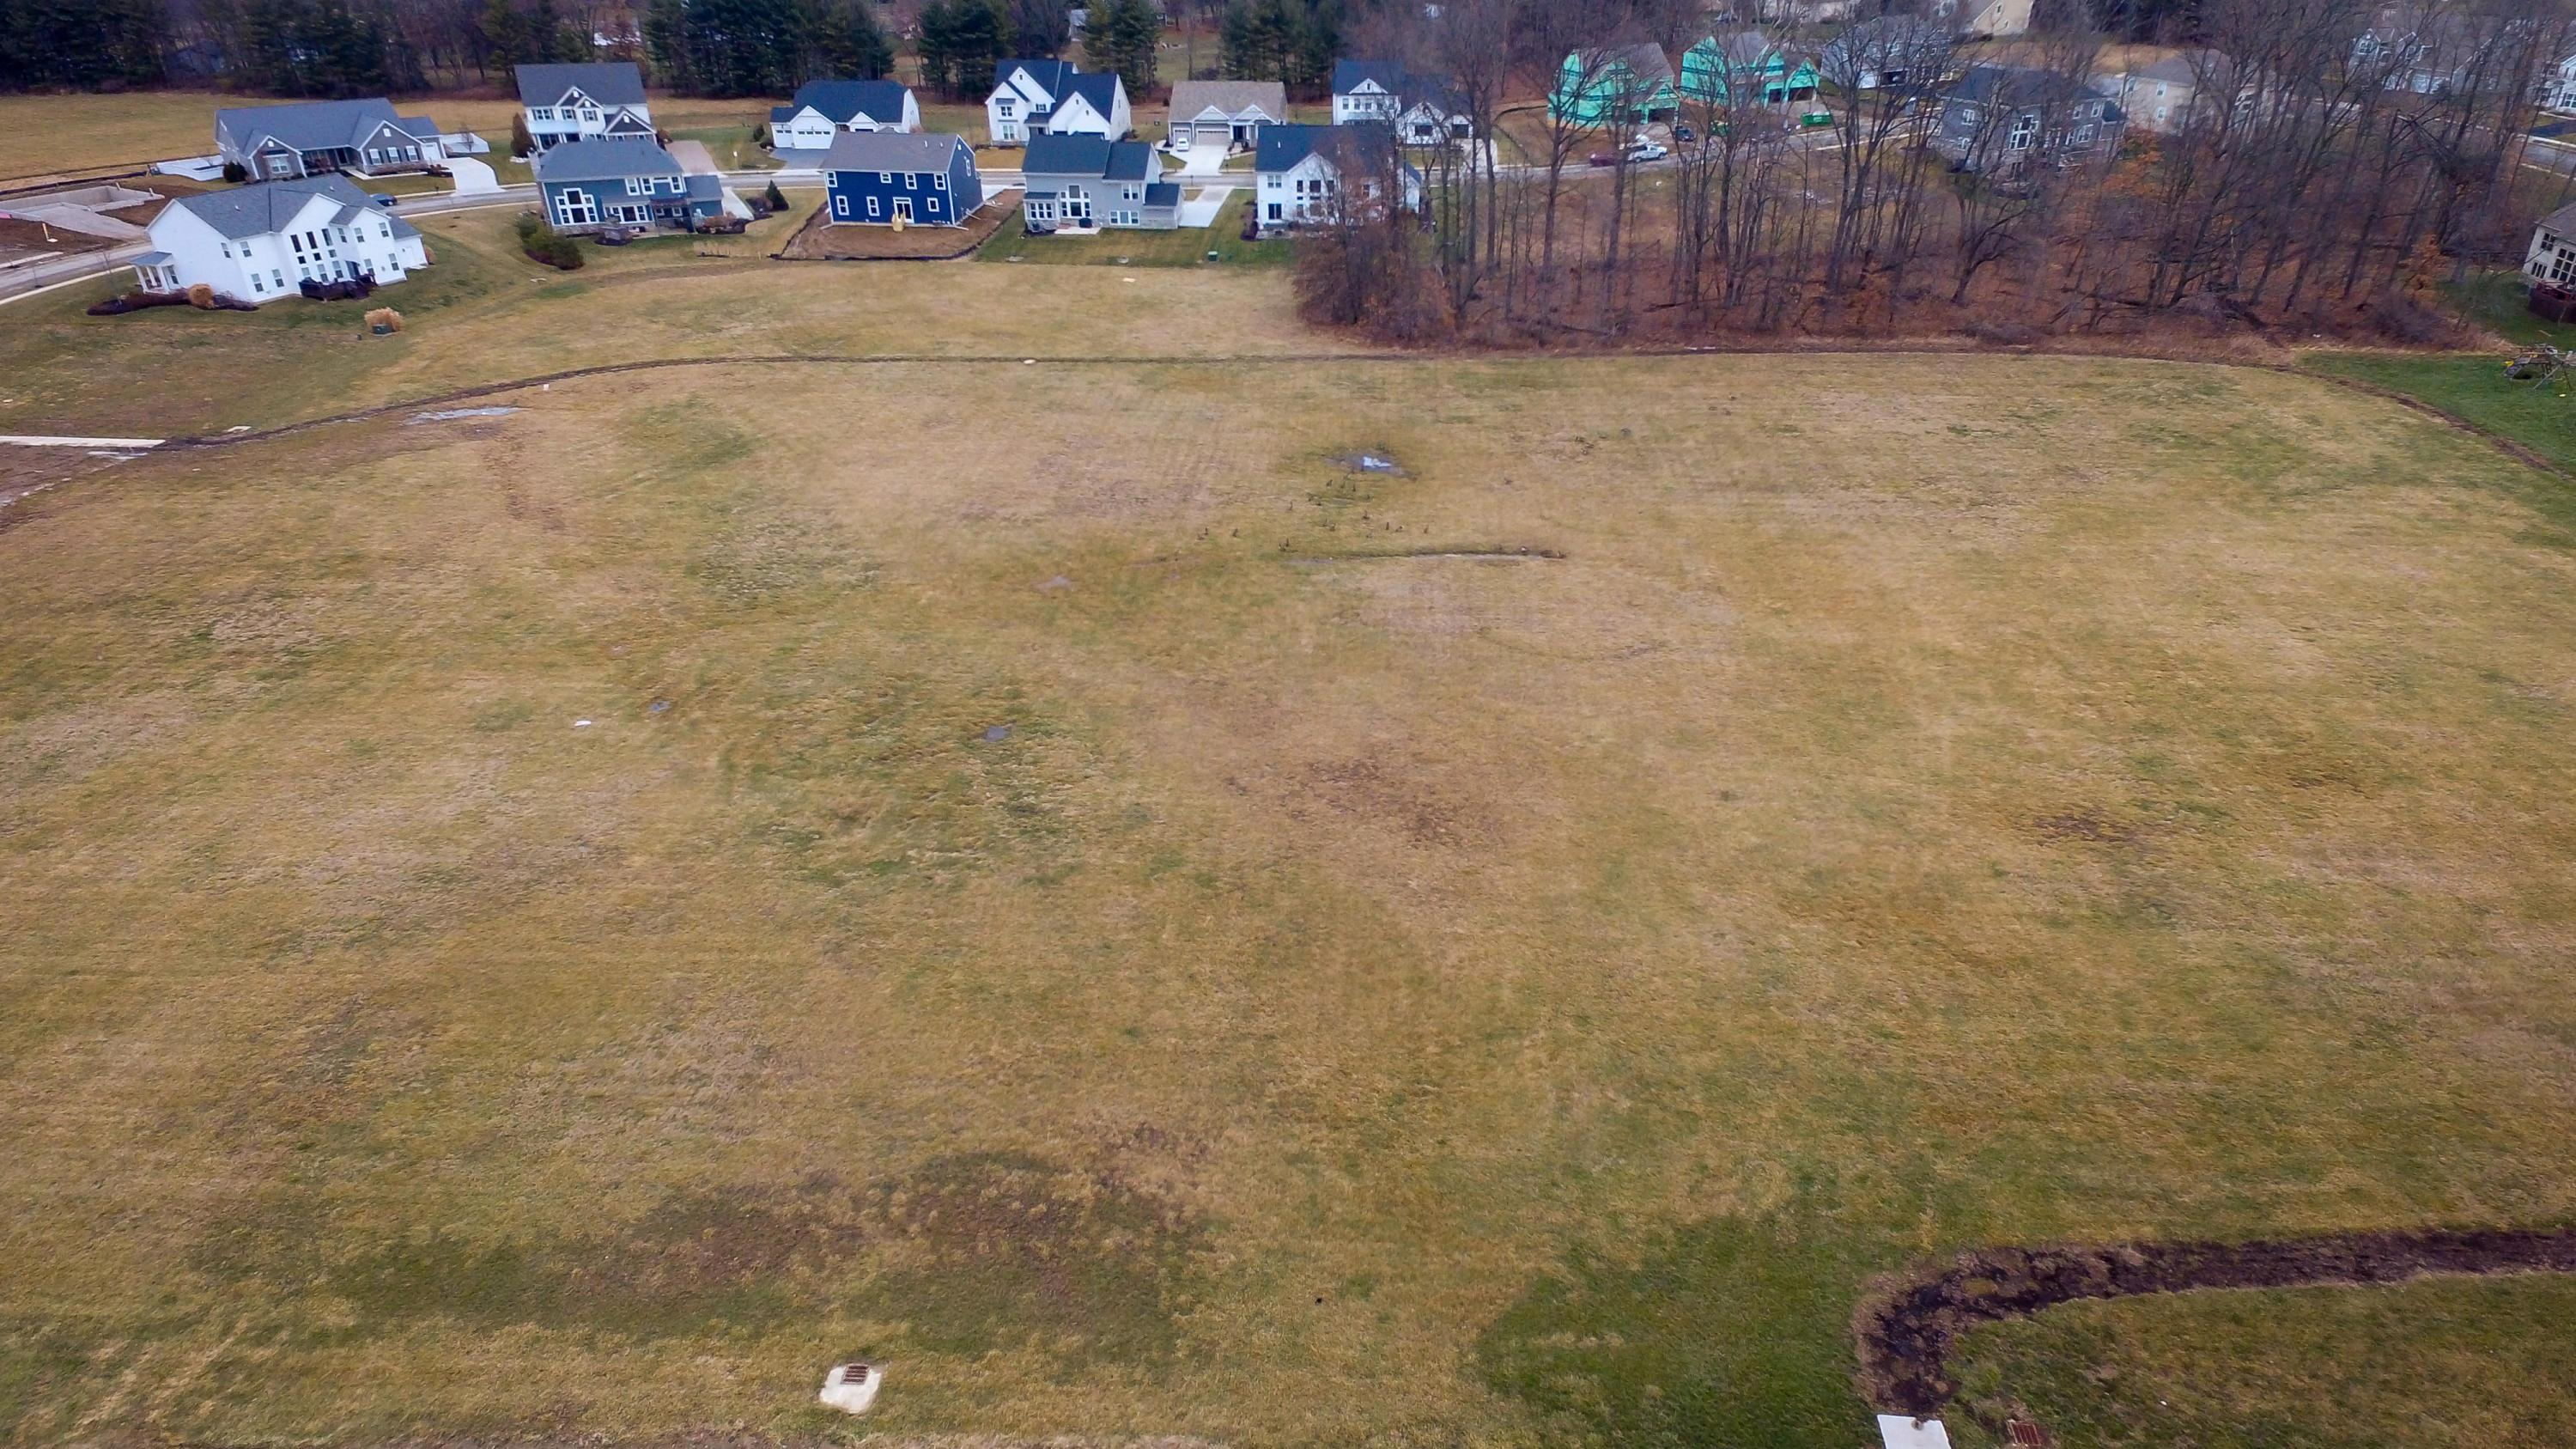 Green space behind lot